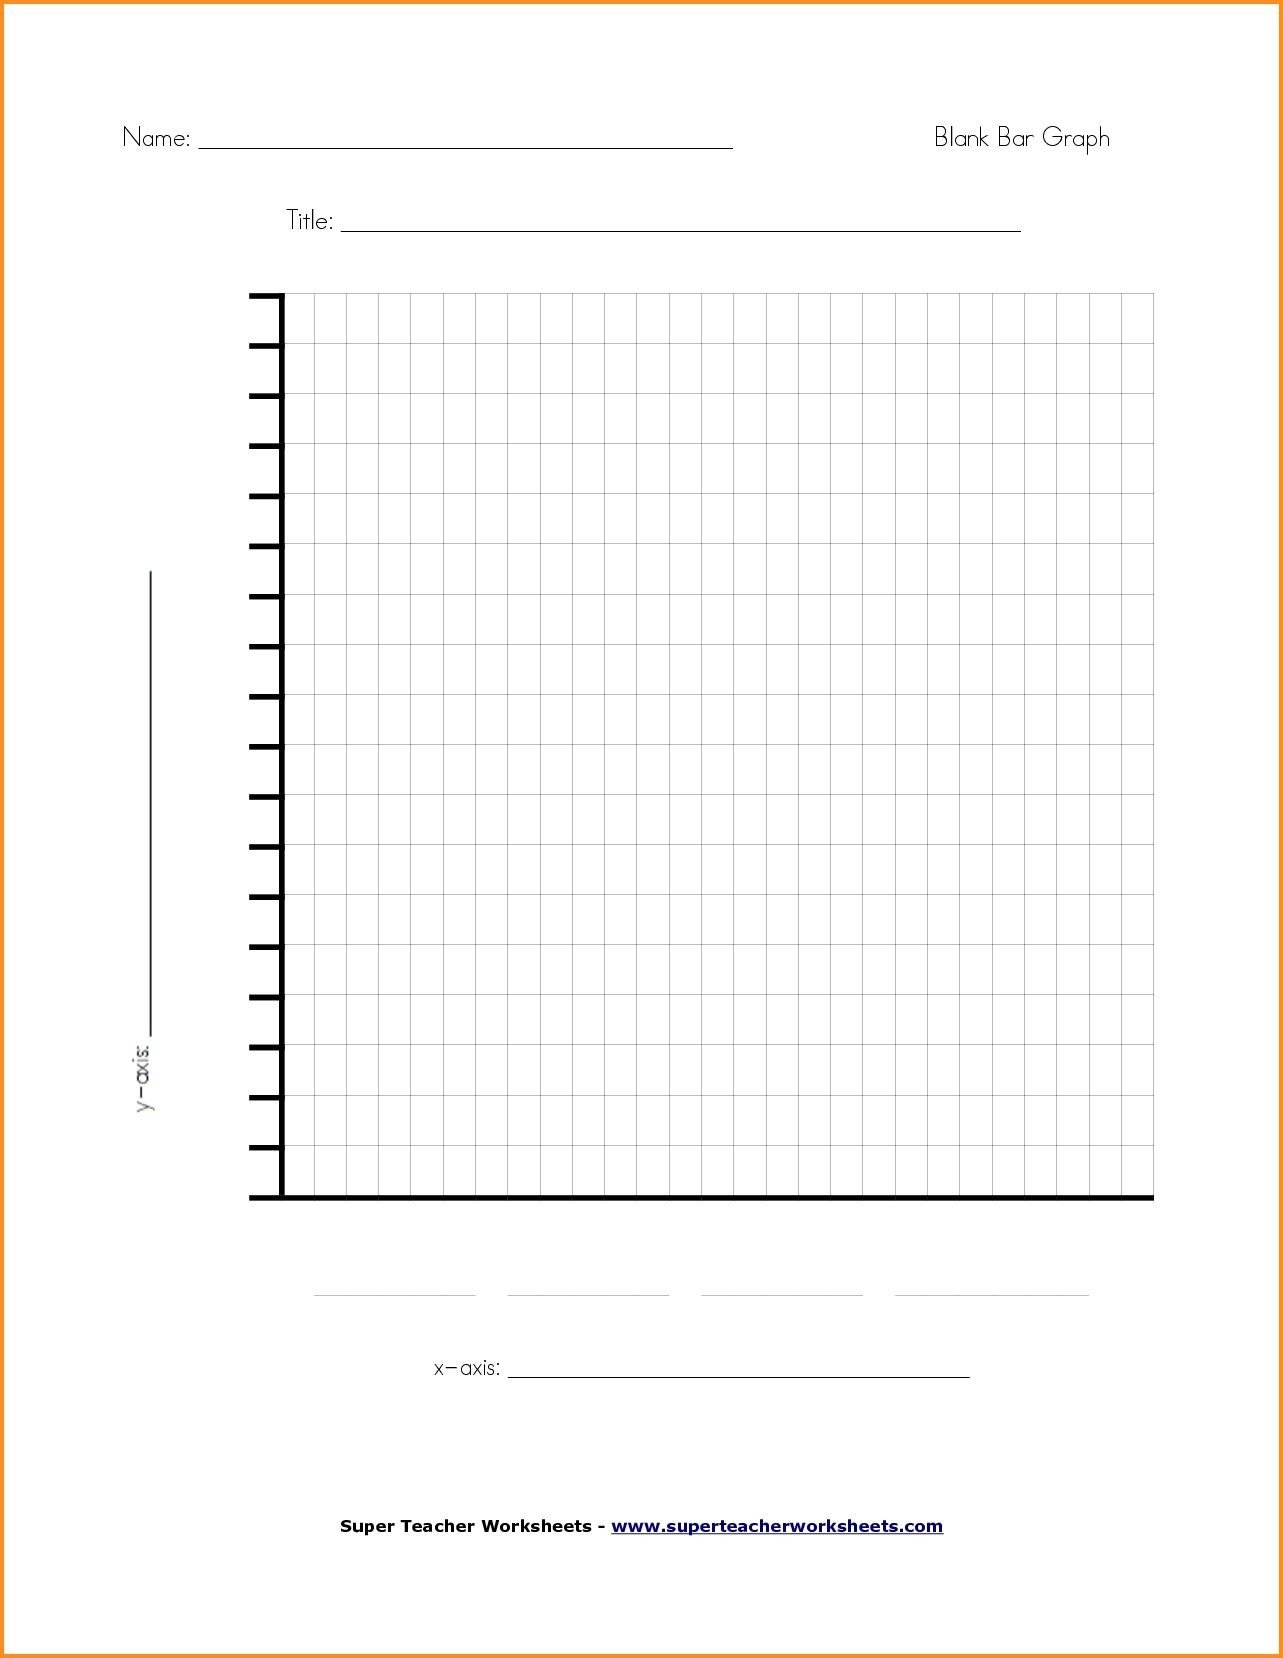 Double Line Graph Worksheets Blank Line Chart Template Writings and Essays Corner